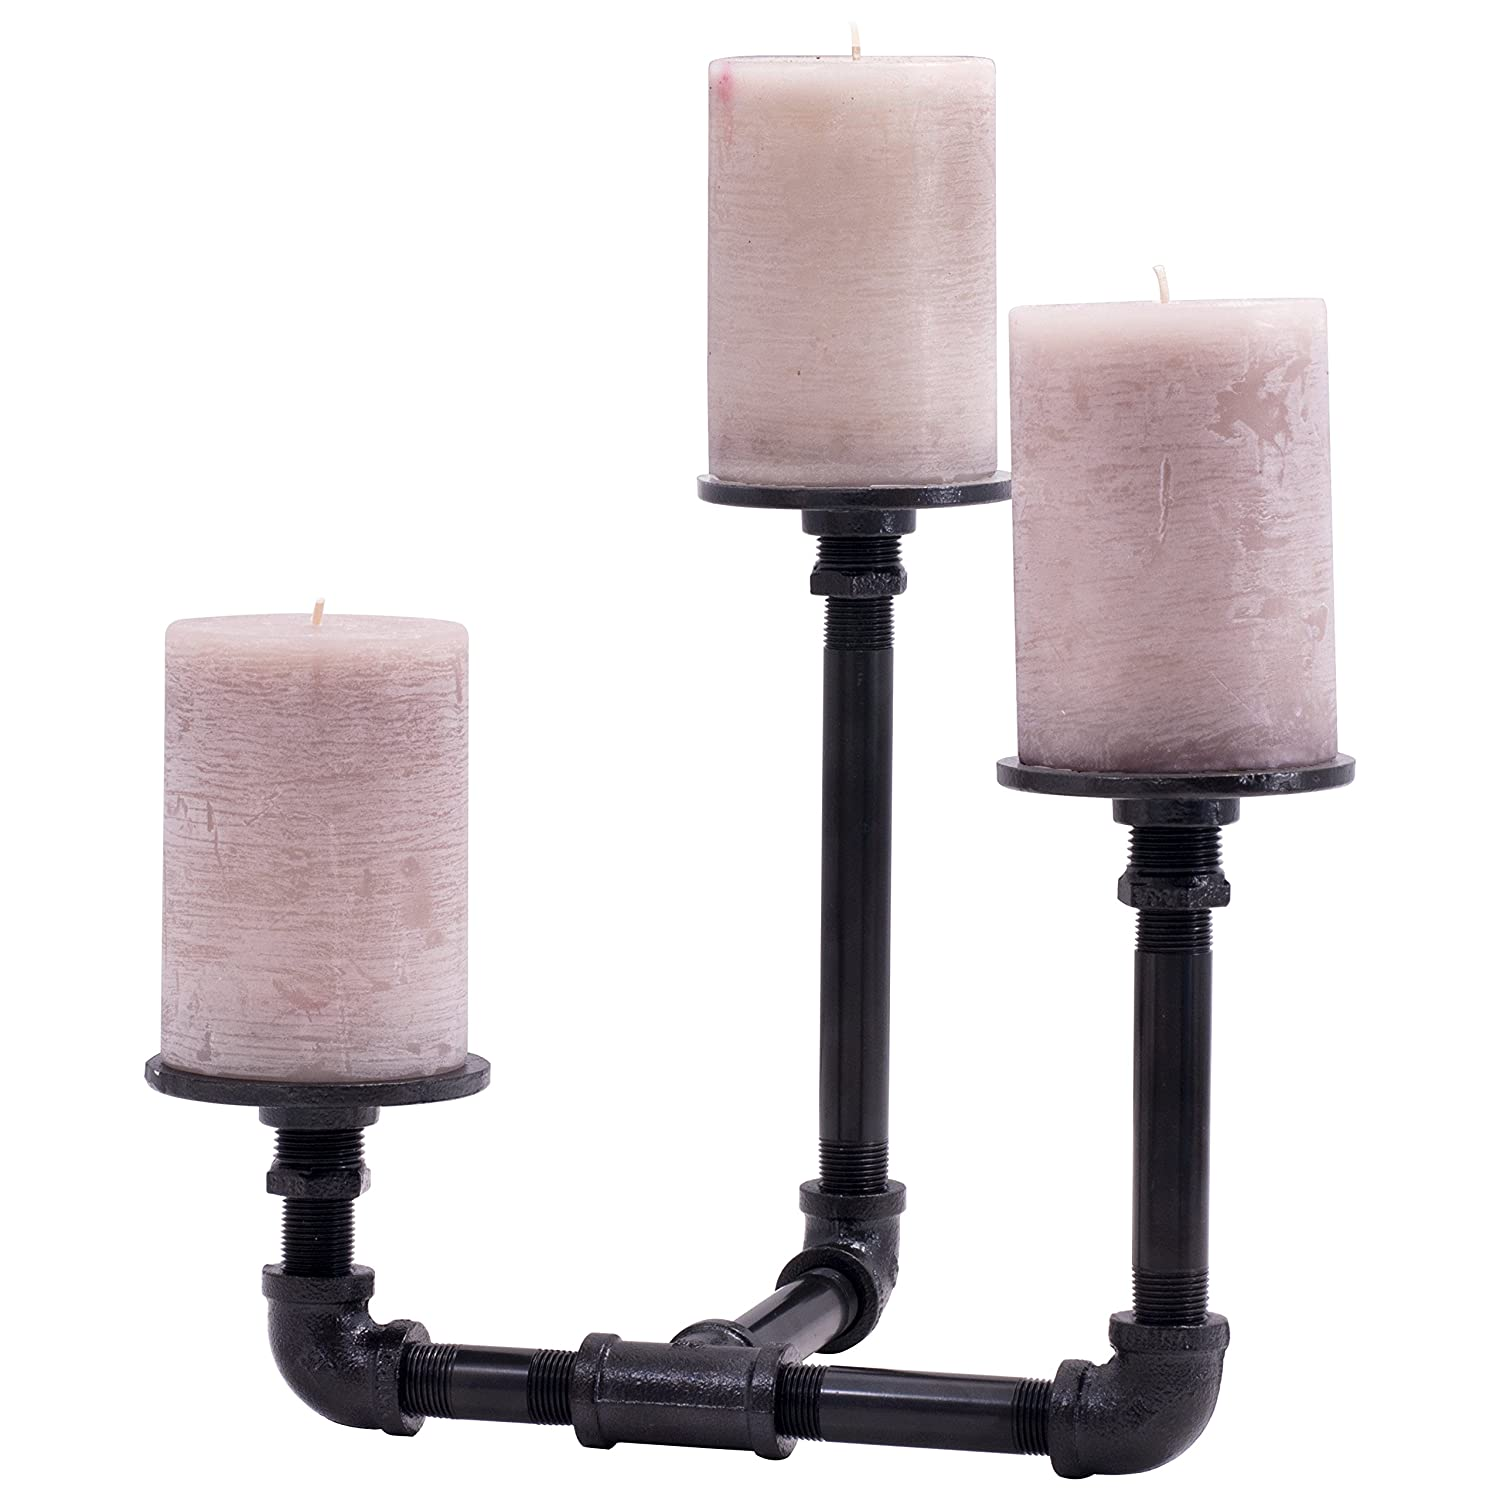 PIPE DÉCOR Industrial 3 Branch Pillar Candle Holder Complete Set Electroplated Black Finish - 38CNPL4-BK- Rustic and Chic Steampunk